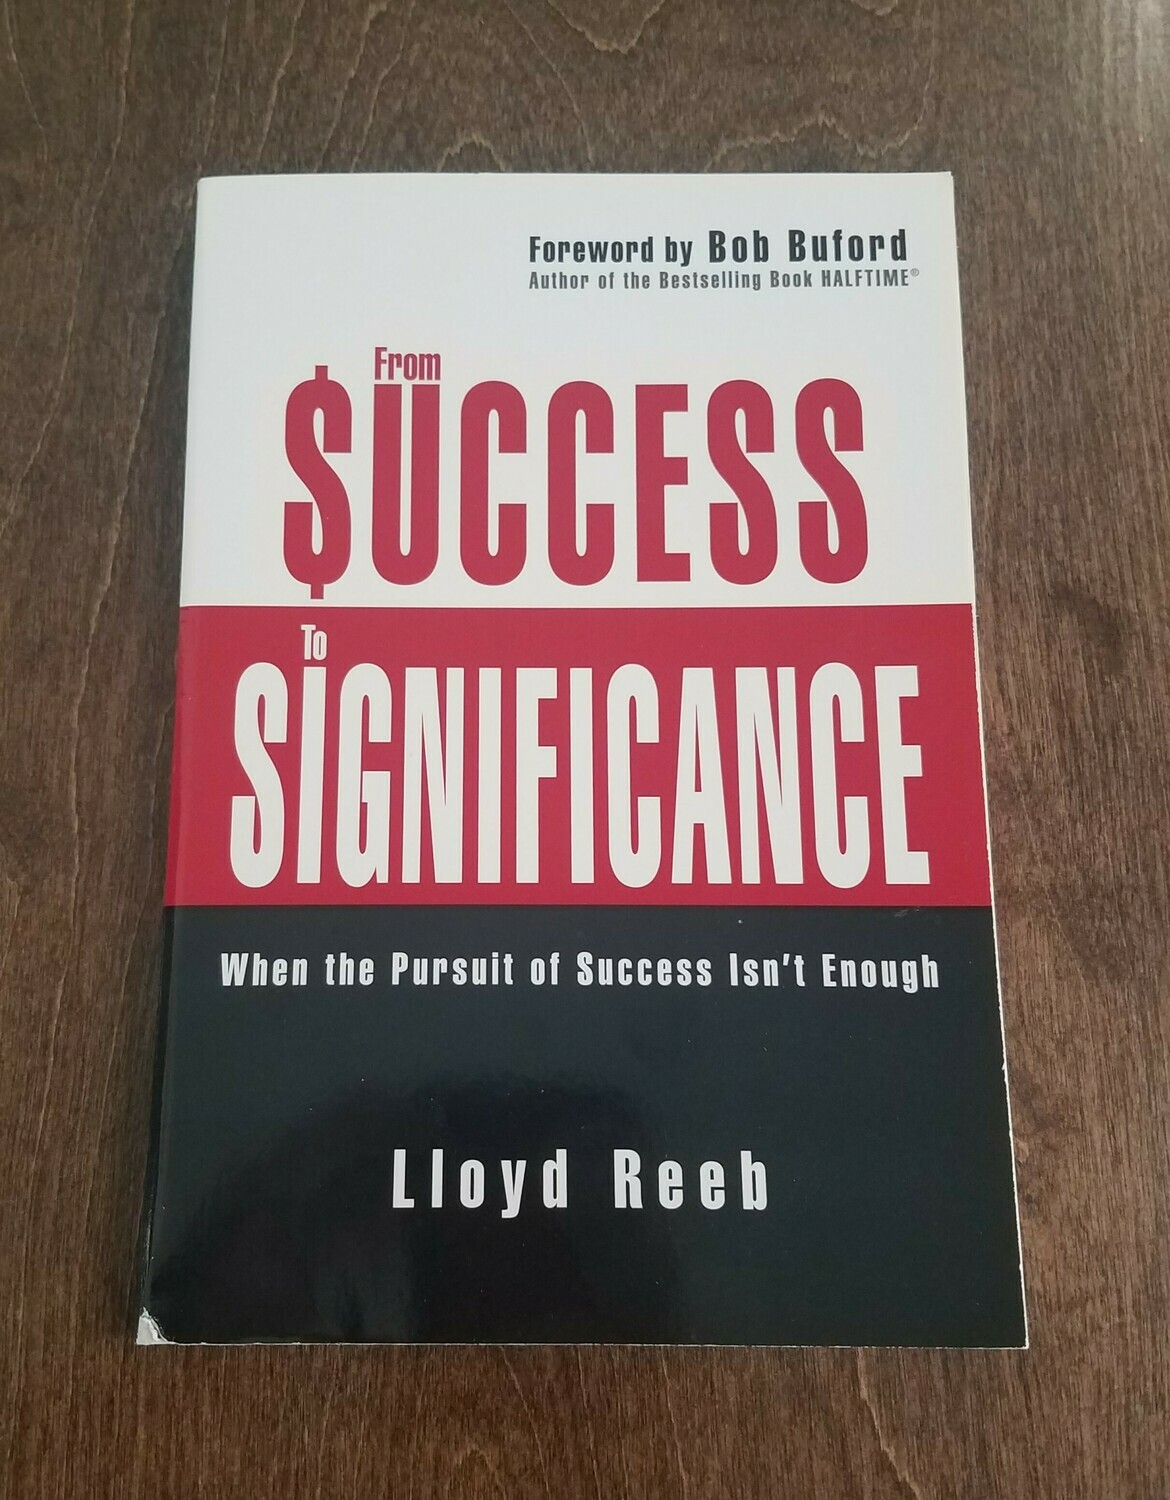 From Success to Significance by Lloyd Reeb